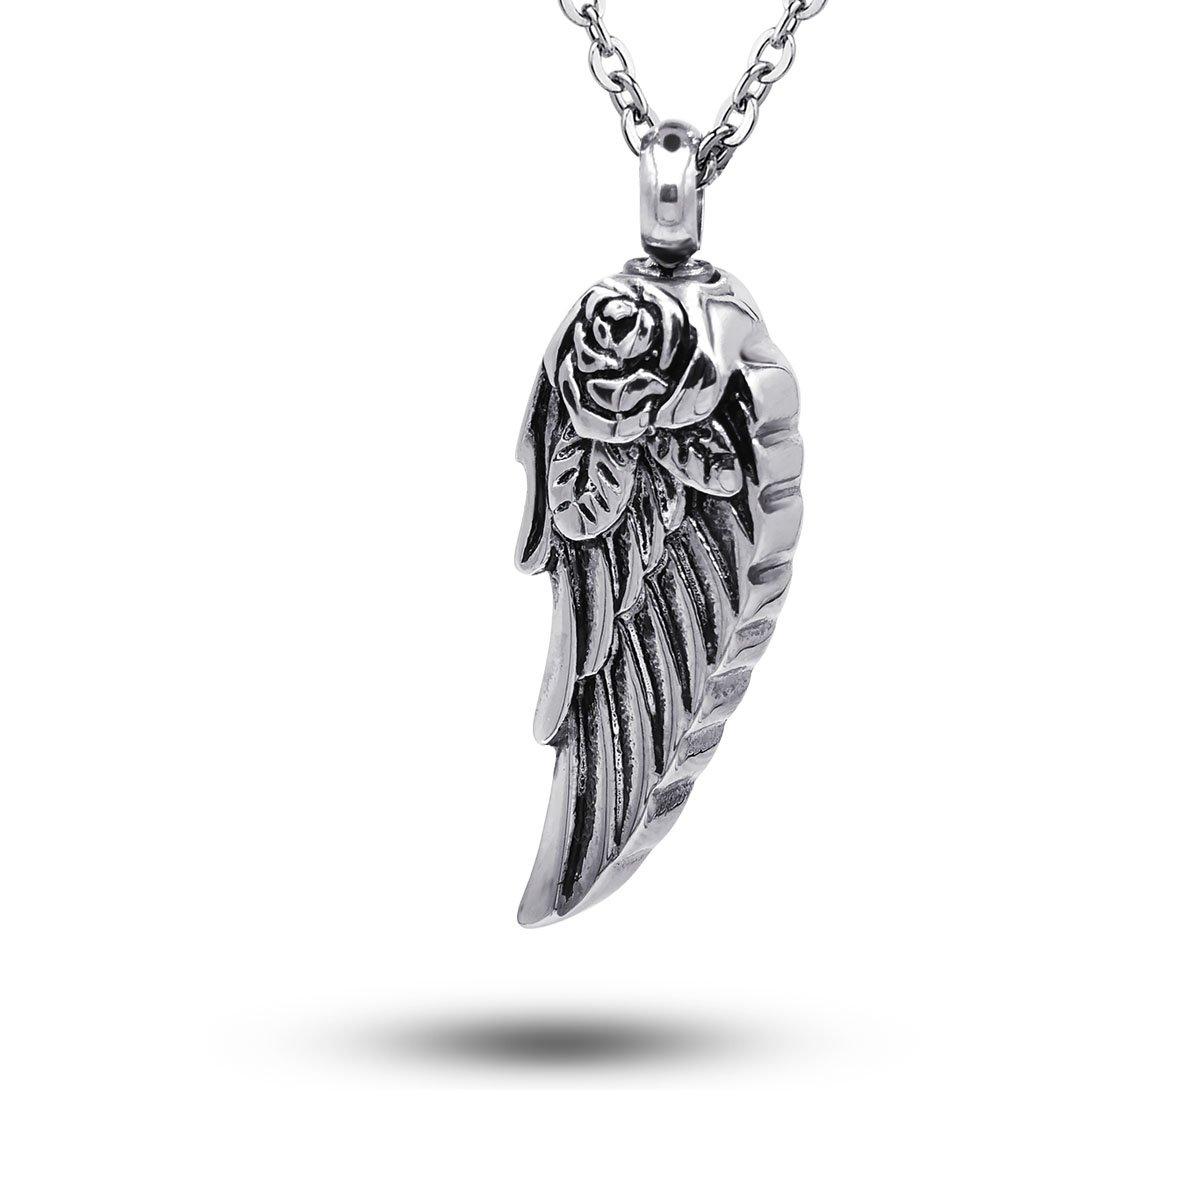 COCO Park Stainless Steel Angel Wing Ash Pendant Cremation Jewelry Urn Necklace Memorial Keepsake